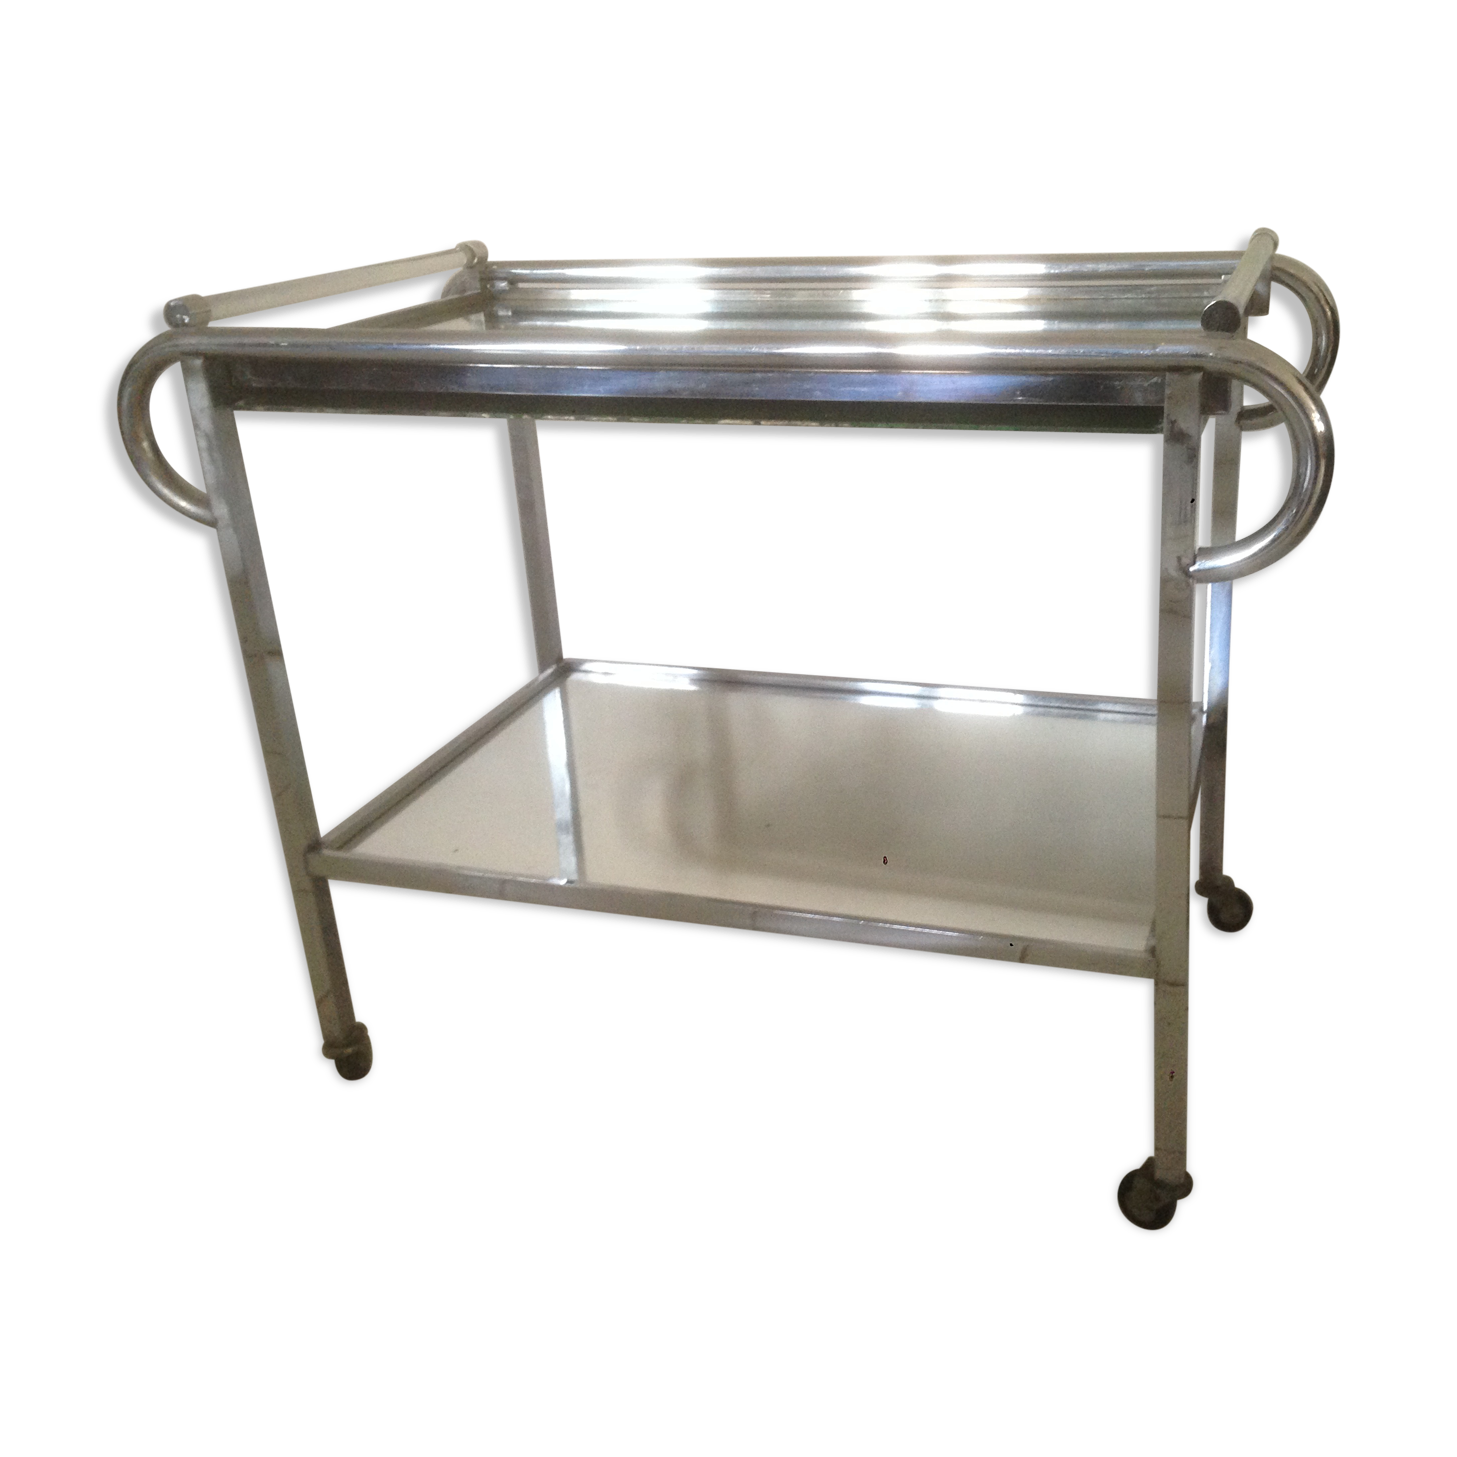 Table roulante inox perfect table de travail roulante for Table roulante cuisine